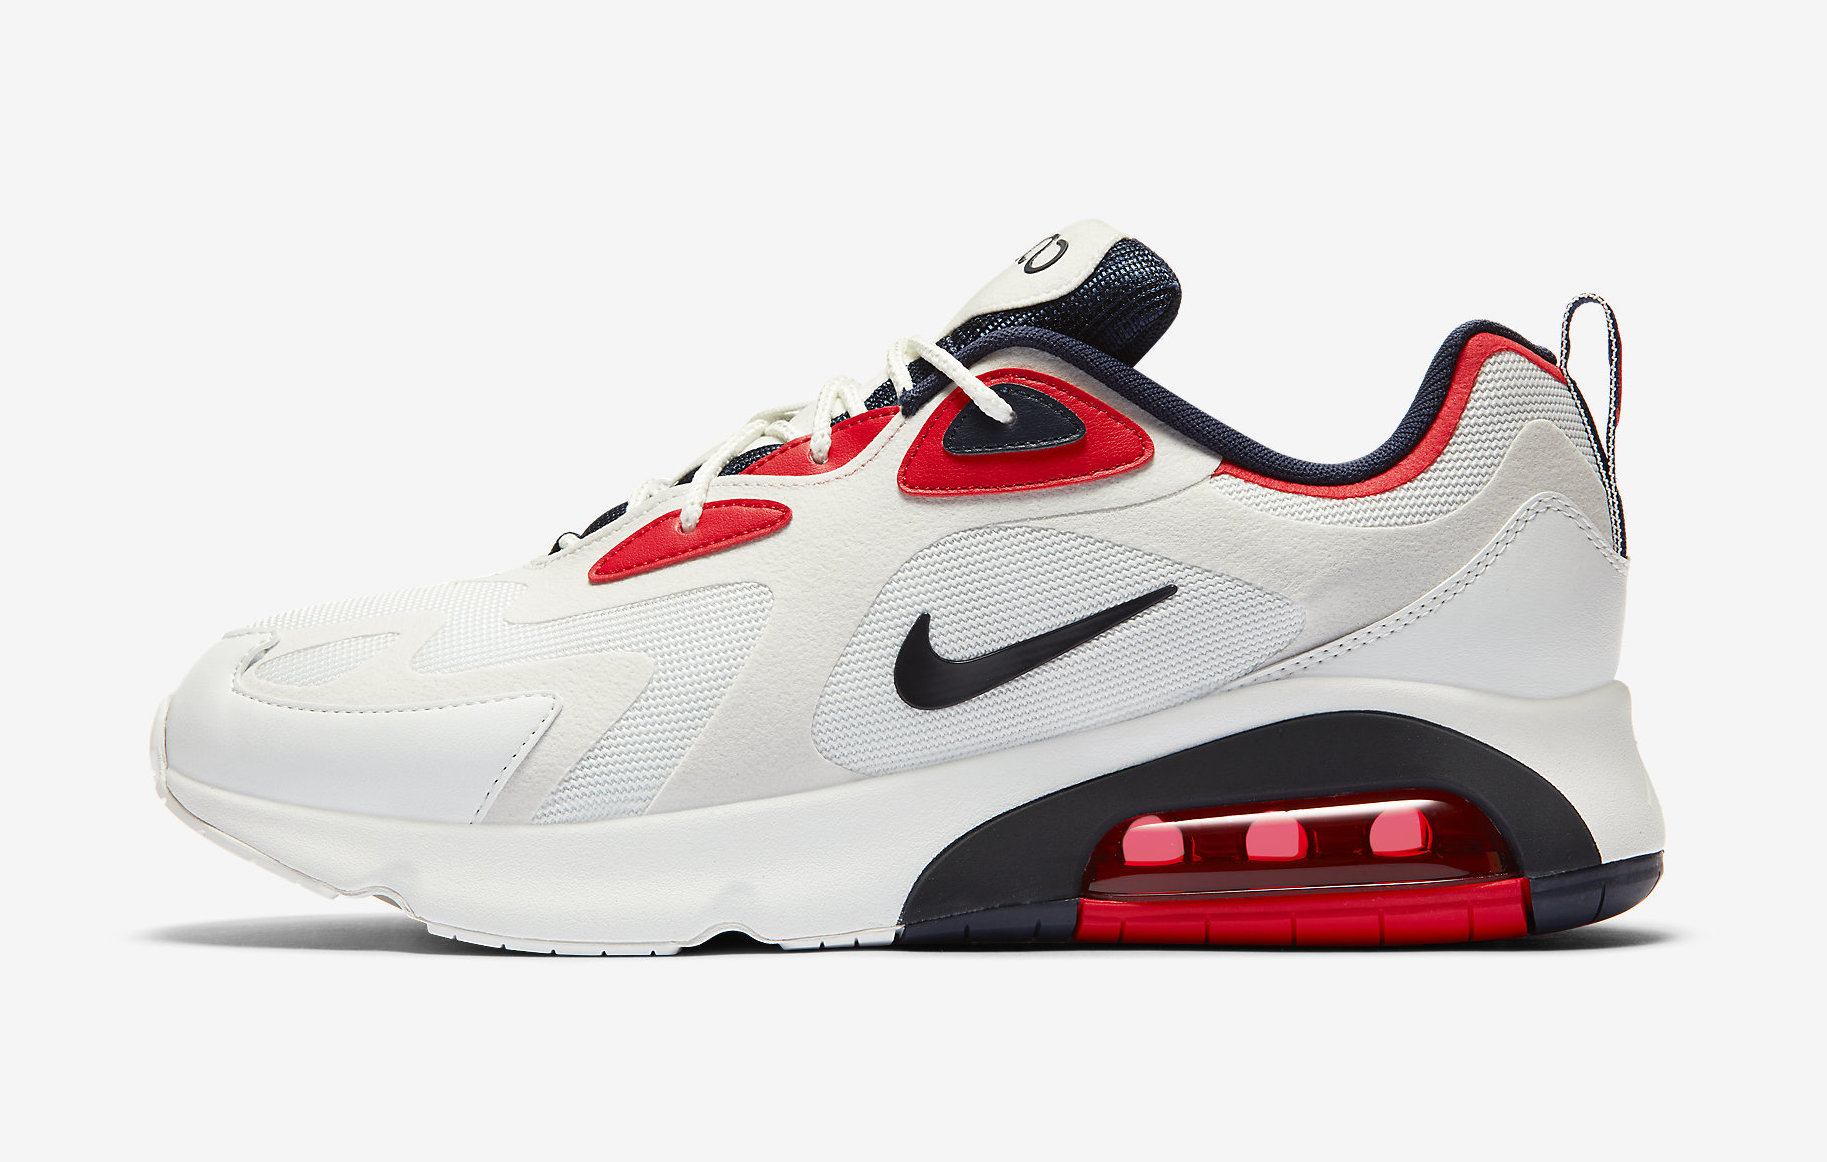 Nike Air Max 200 CT1262-101 Release Date